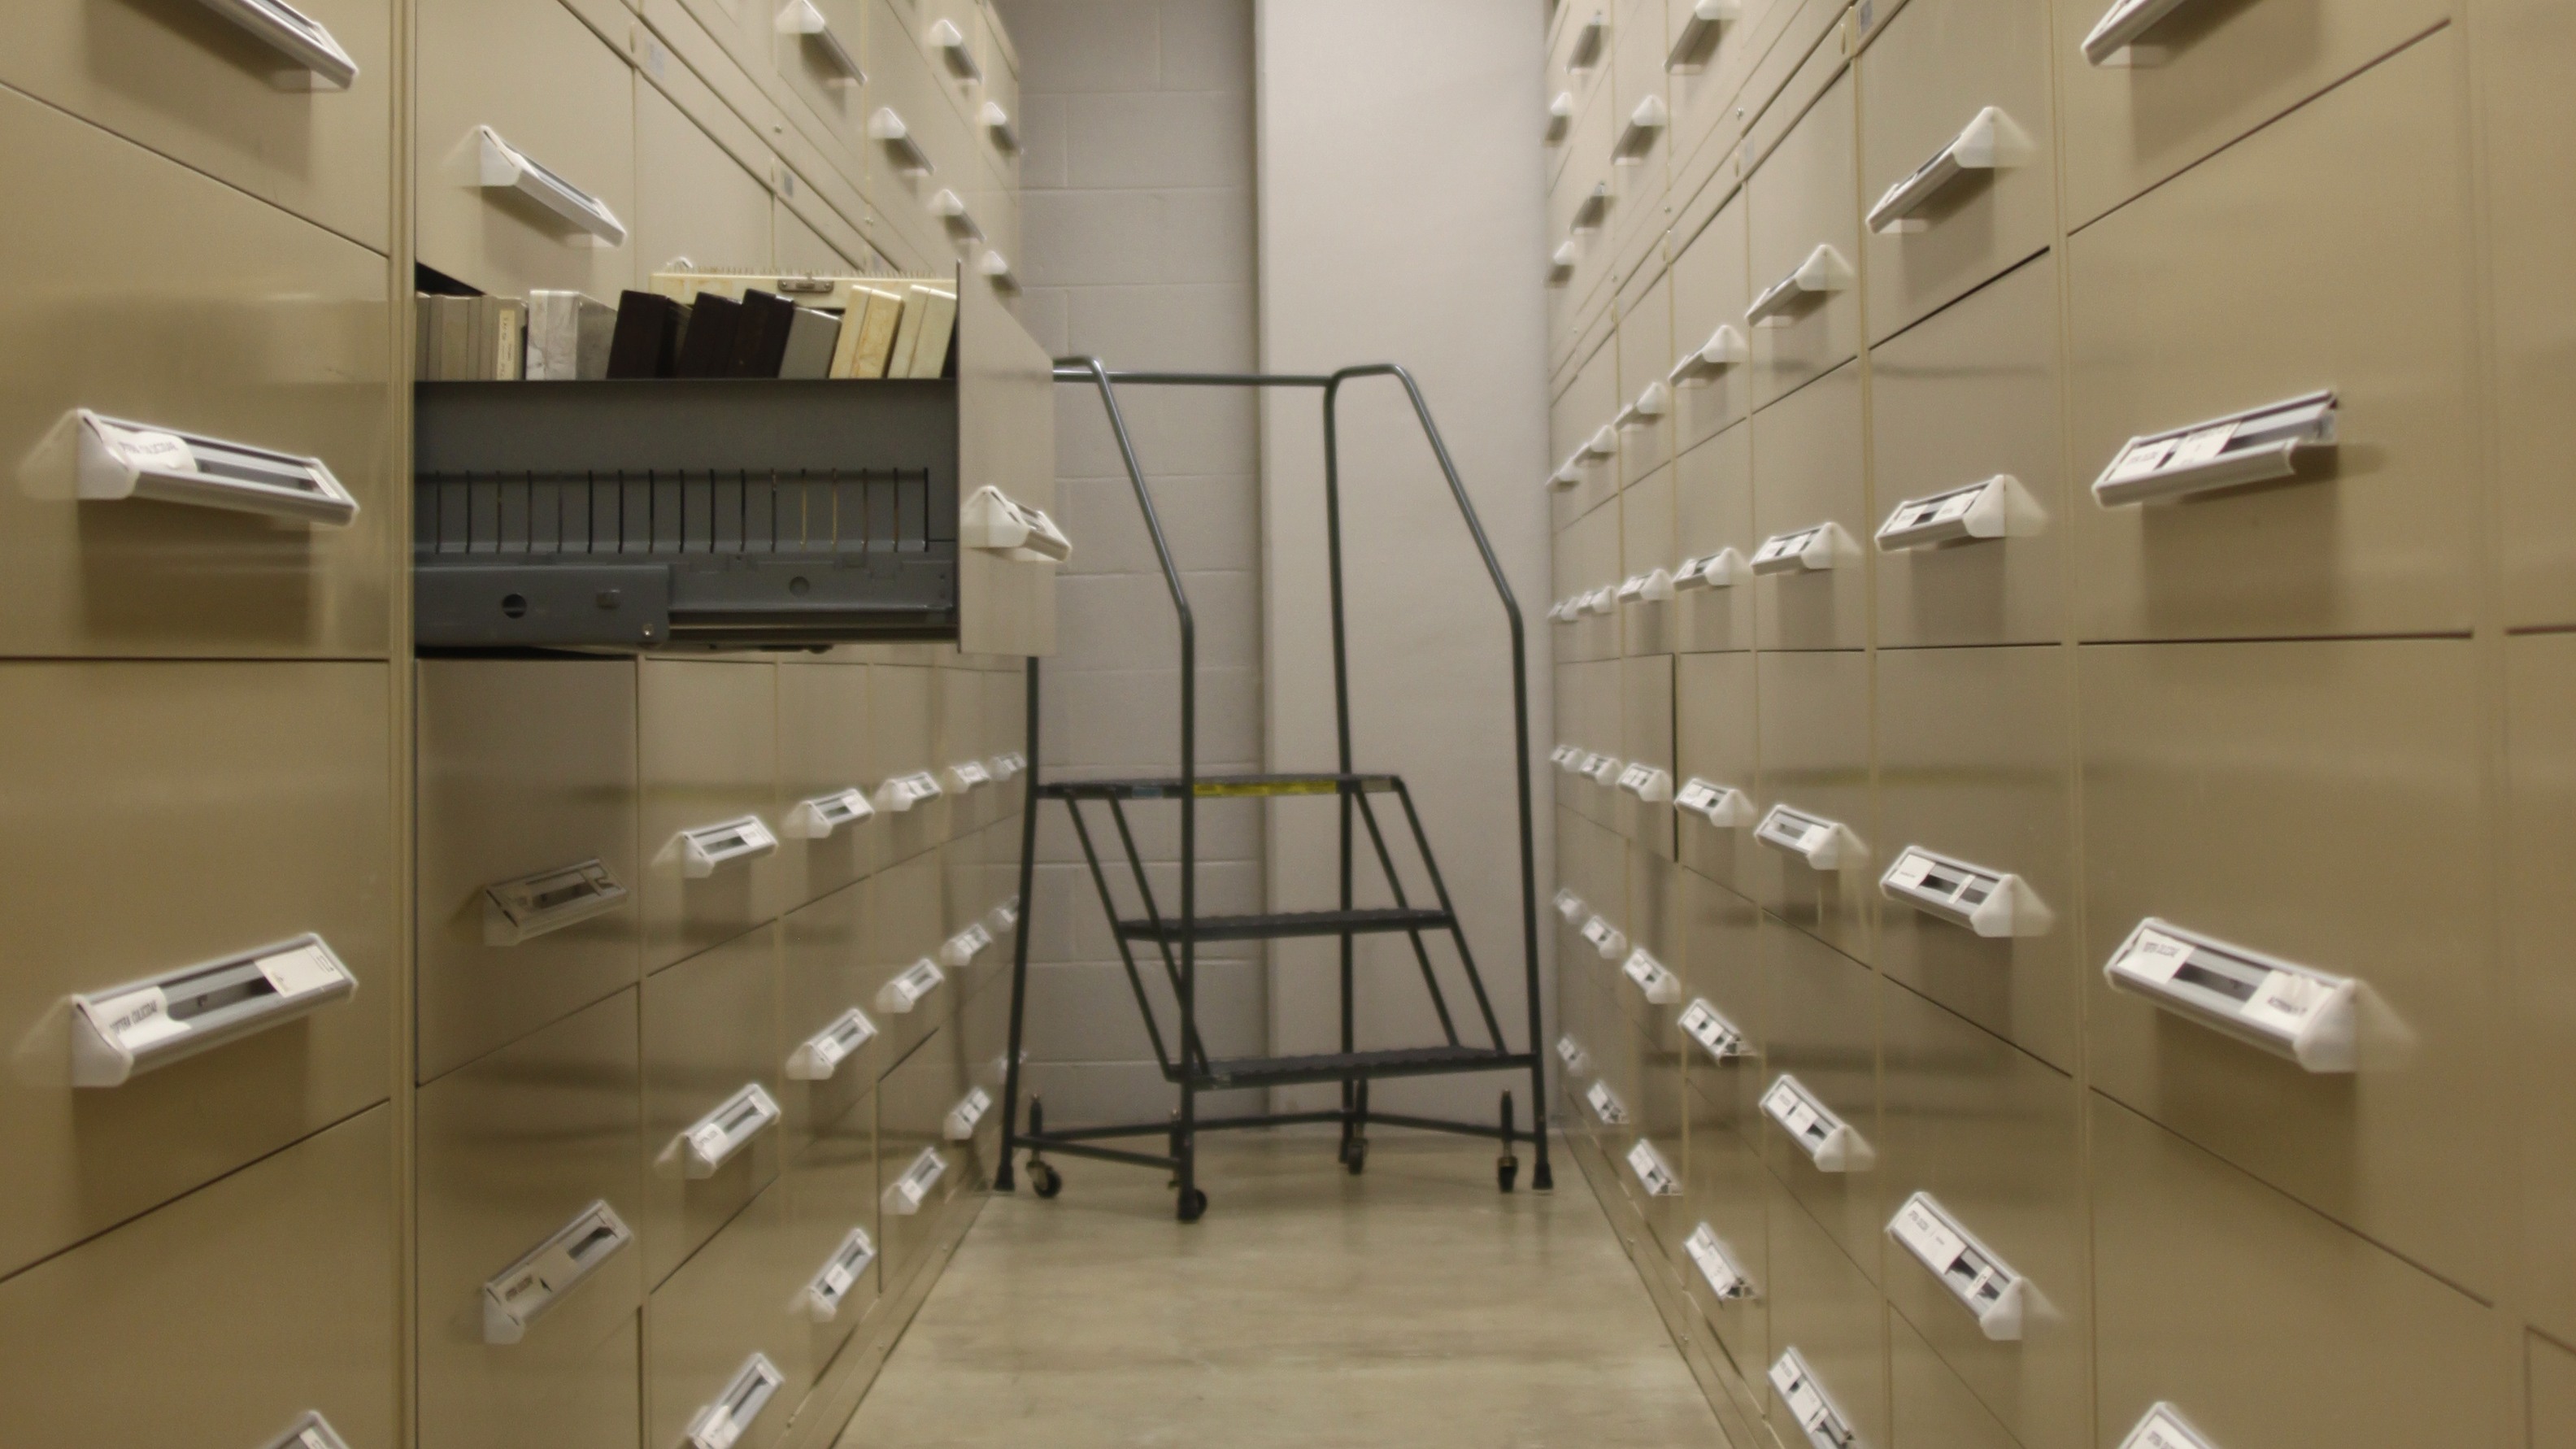 View of collections drawers